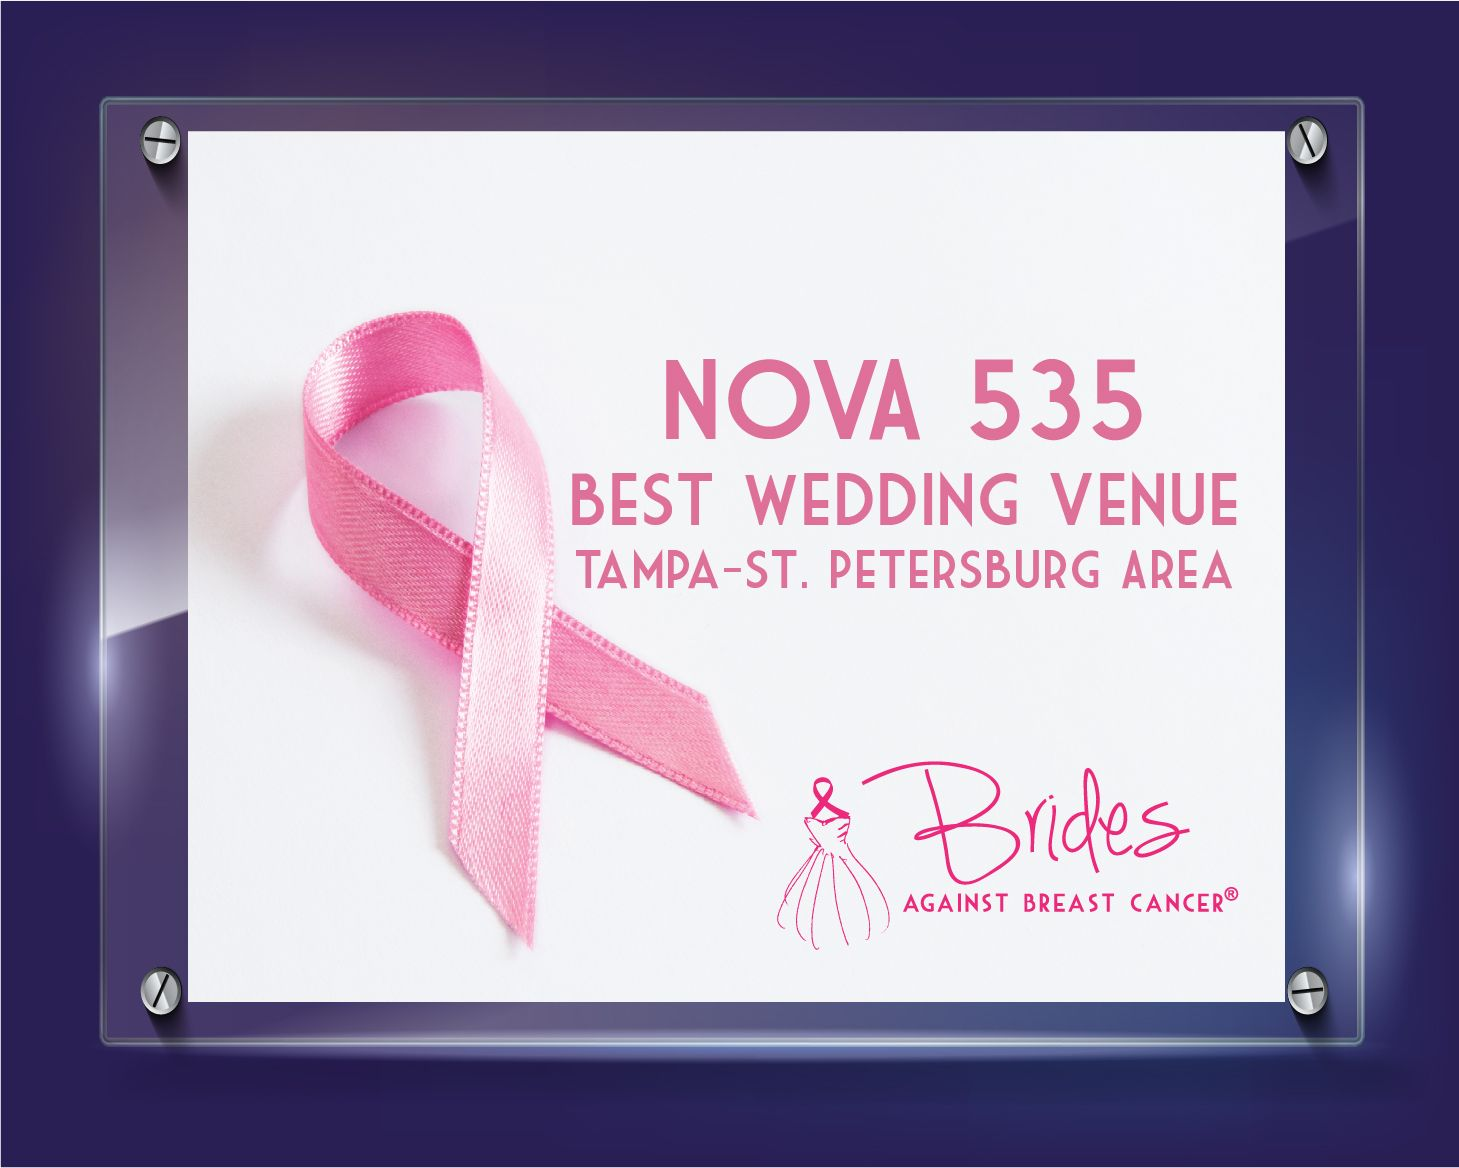 NOVA 535 Awarded Best Wedding Venue by Brides Against Breast Cancer